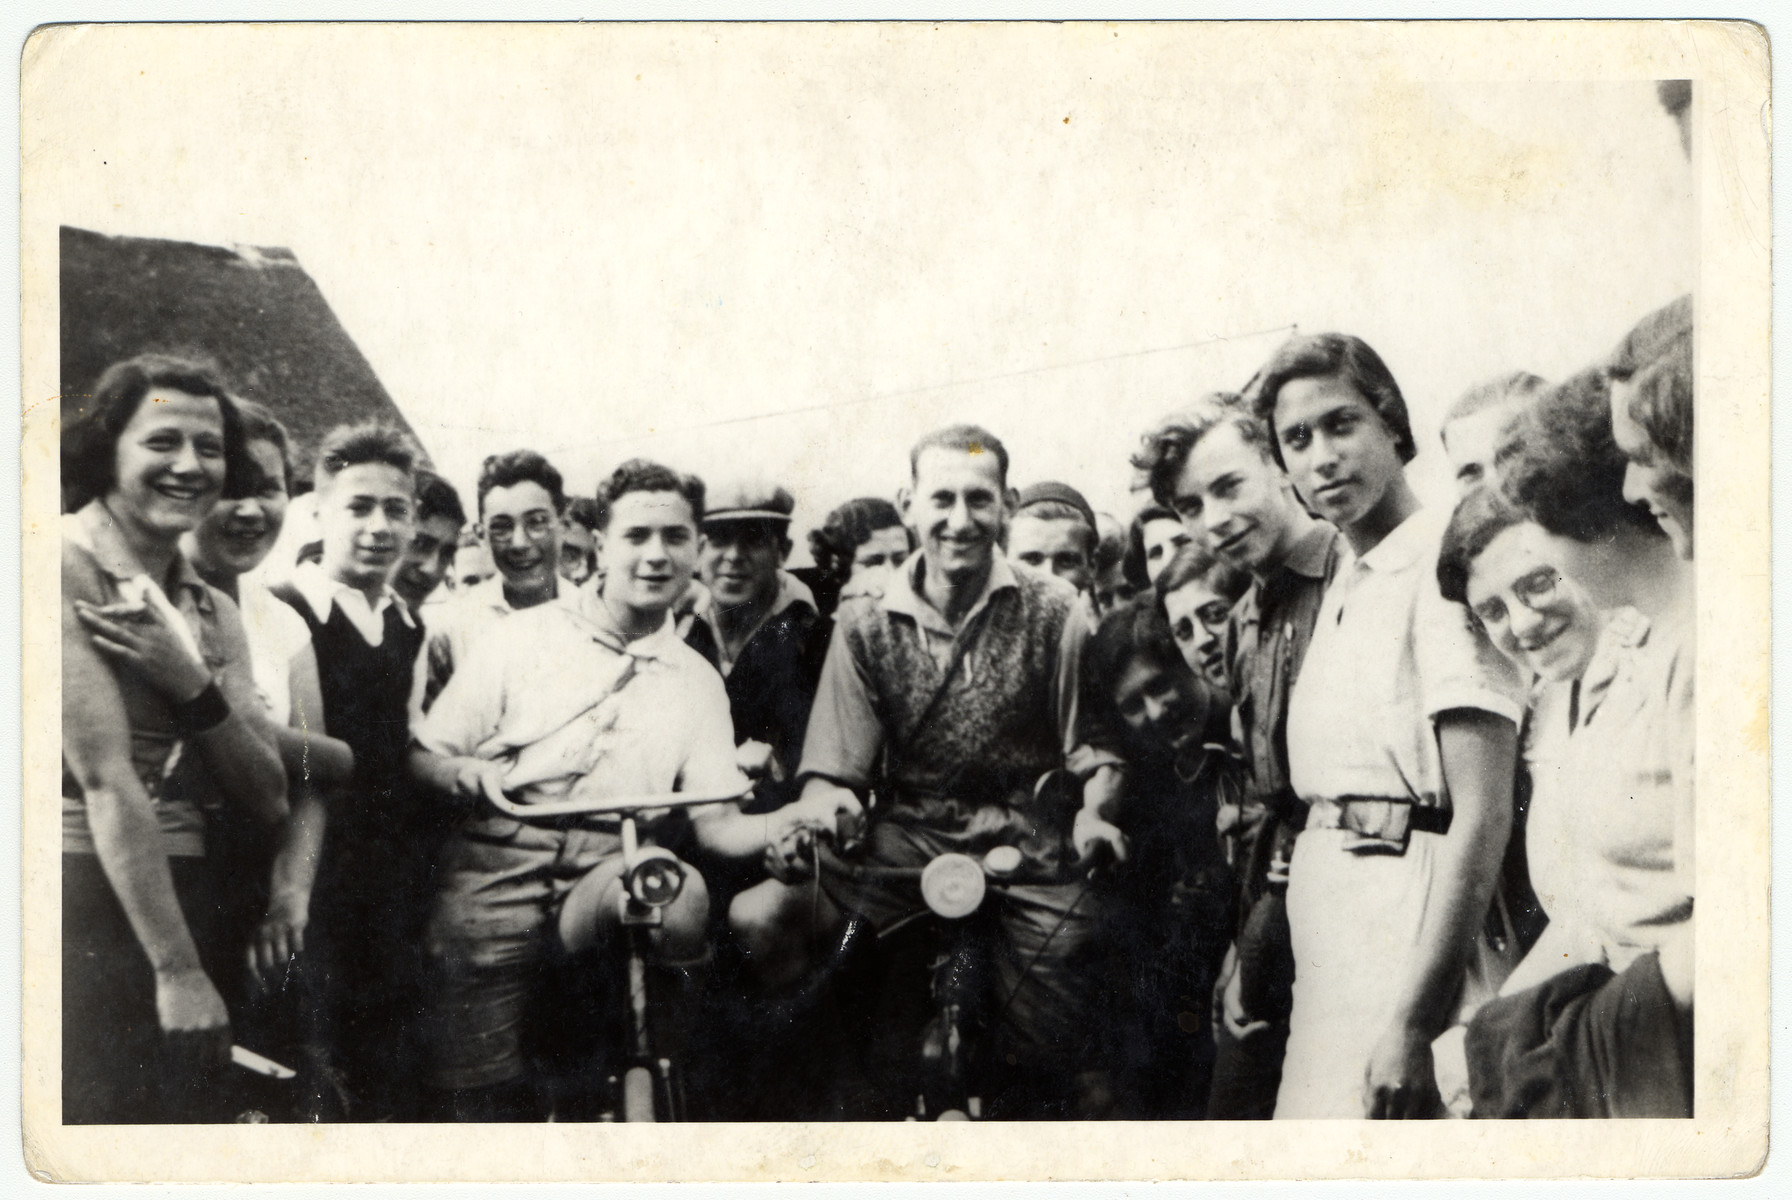 Group portrait of Zionist youth in a hachshara in The Netherlands.  Jacob Polak is pictured in the center right on a bicycle.